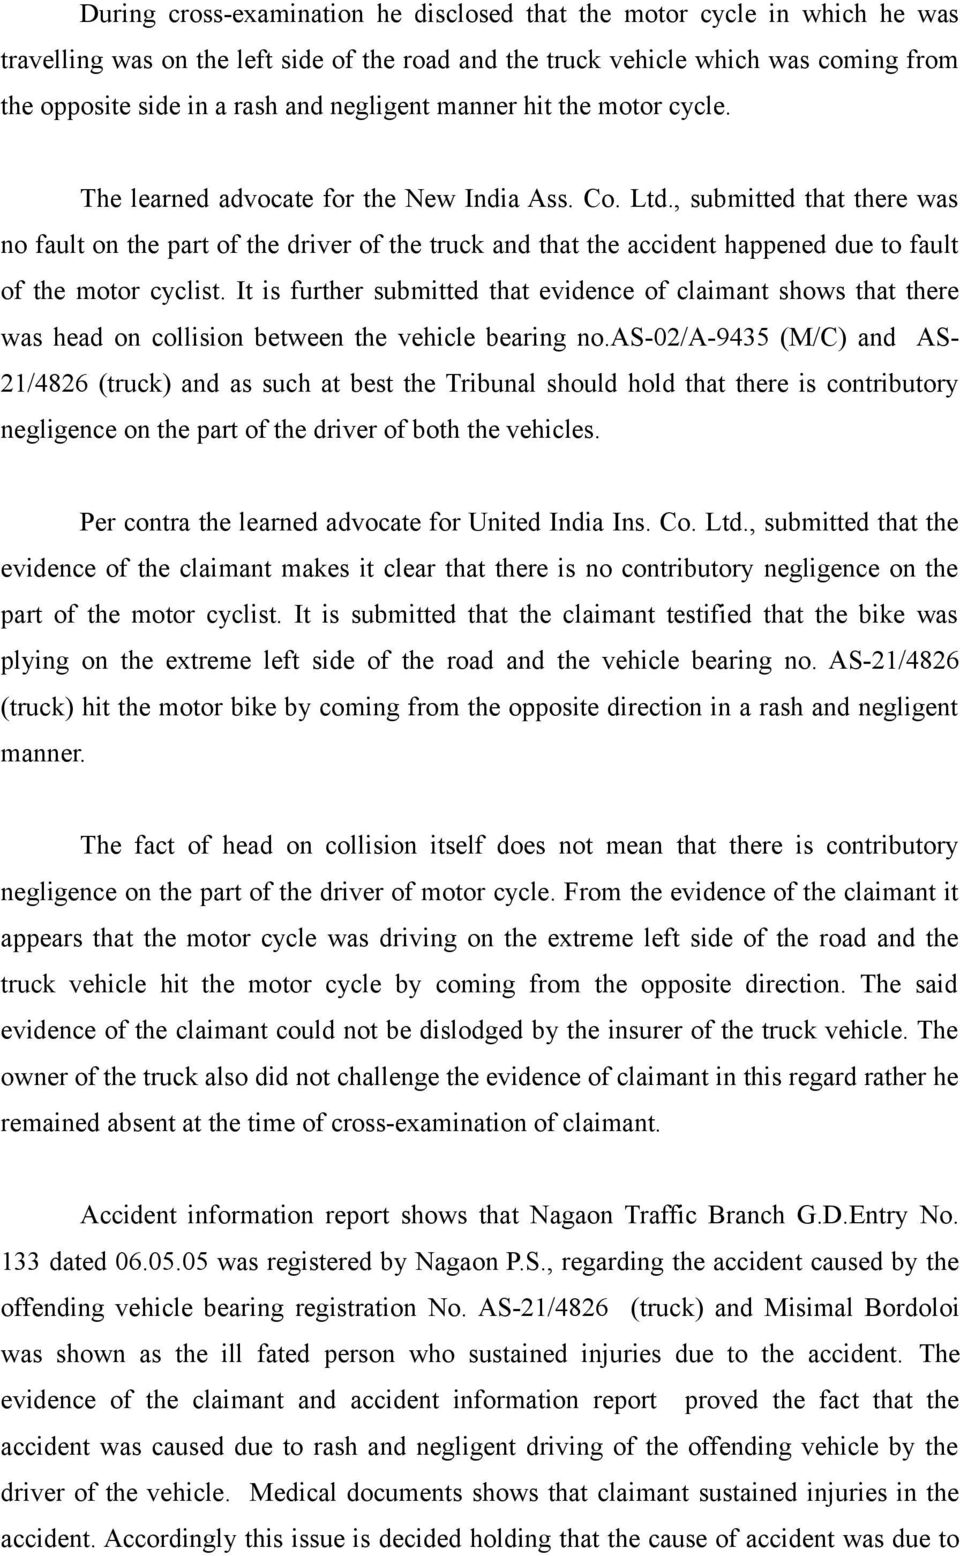 , submitted that there was no fault on the part of the driver of the truck and that the accident happened due to fault of the motor cyclist.